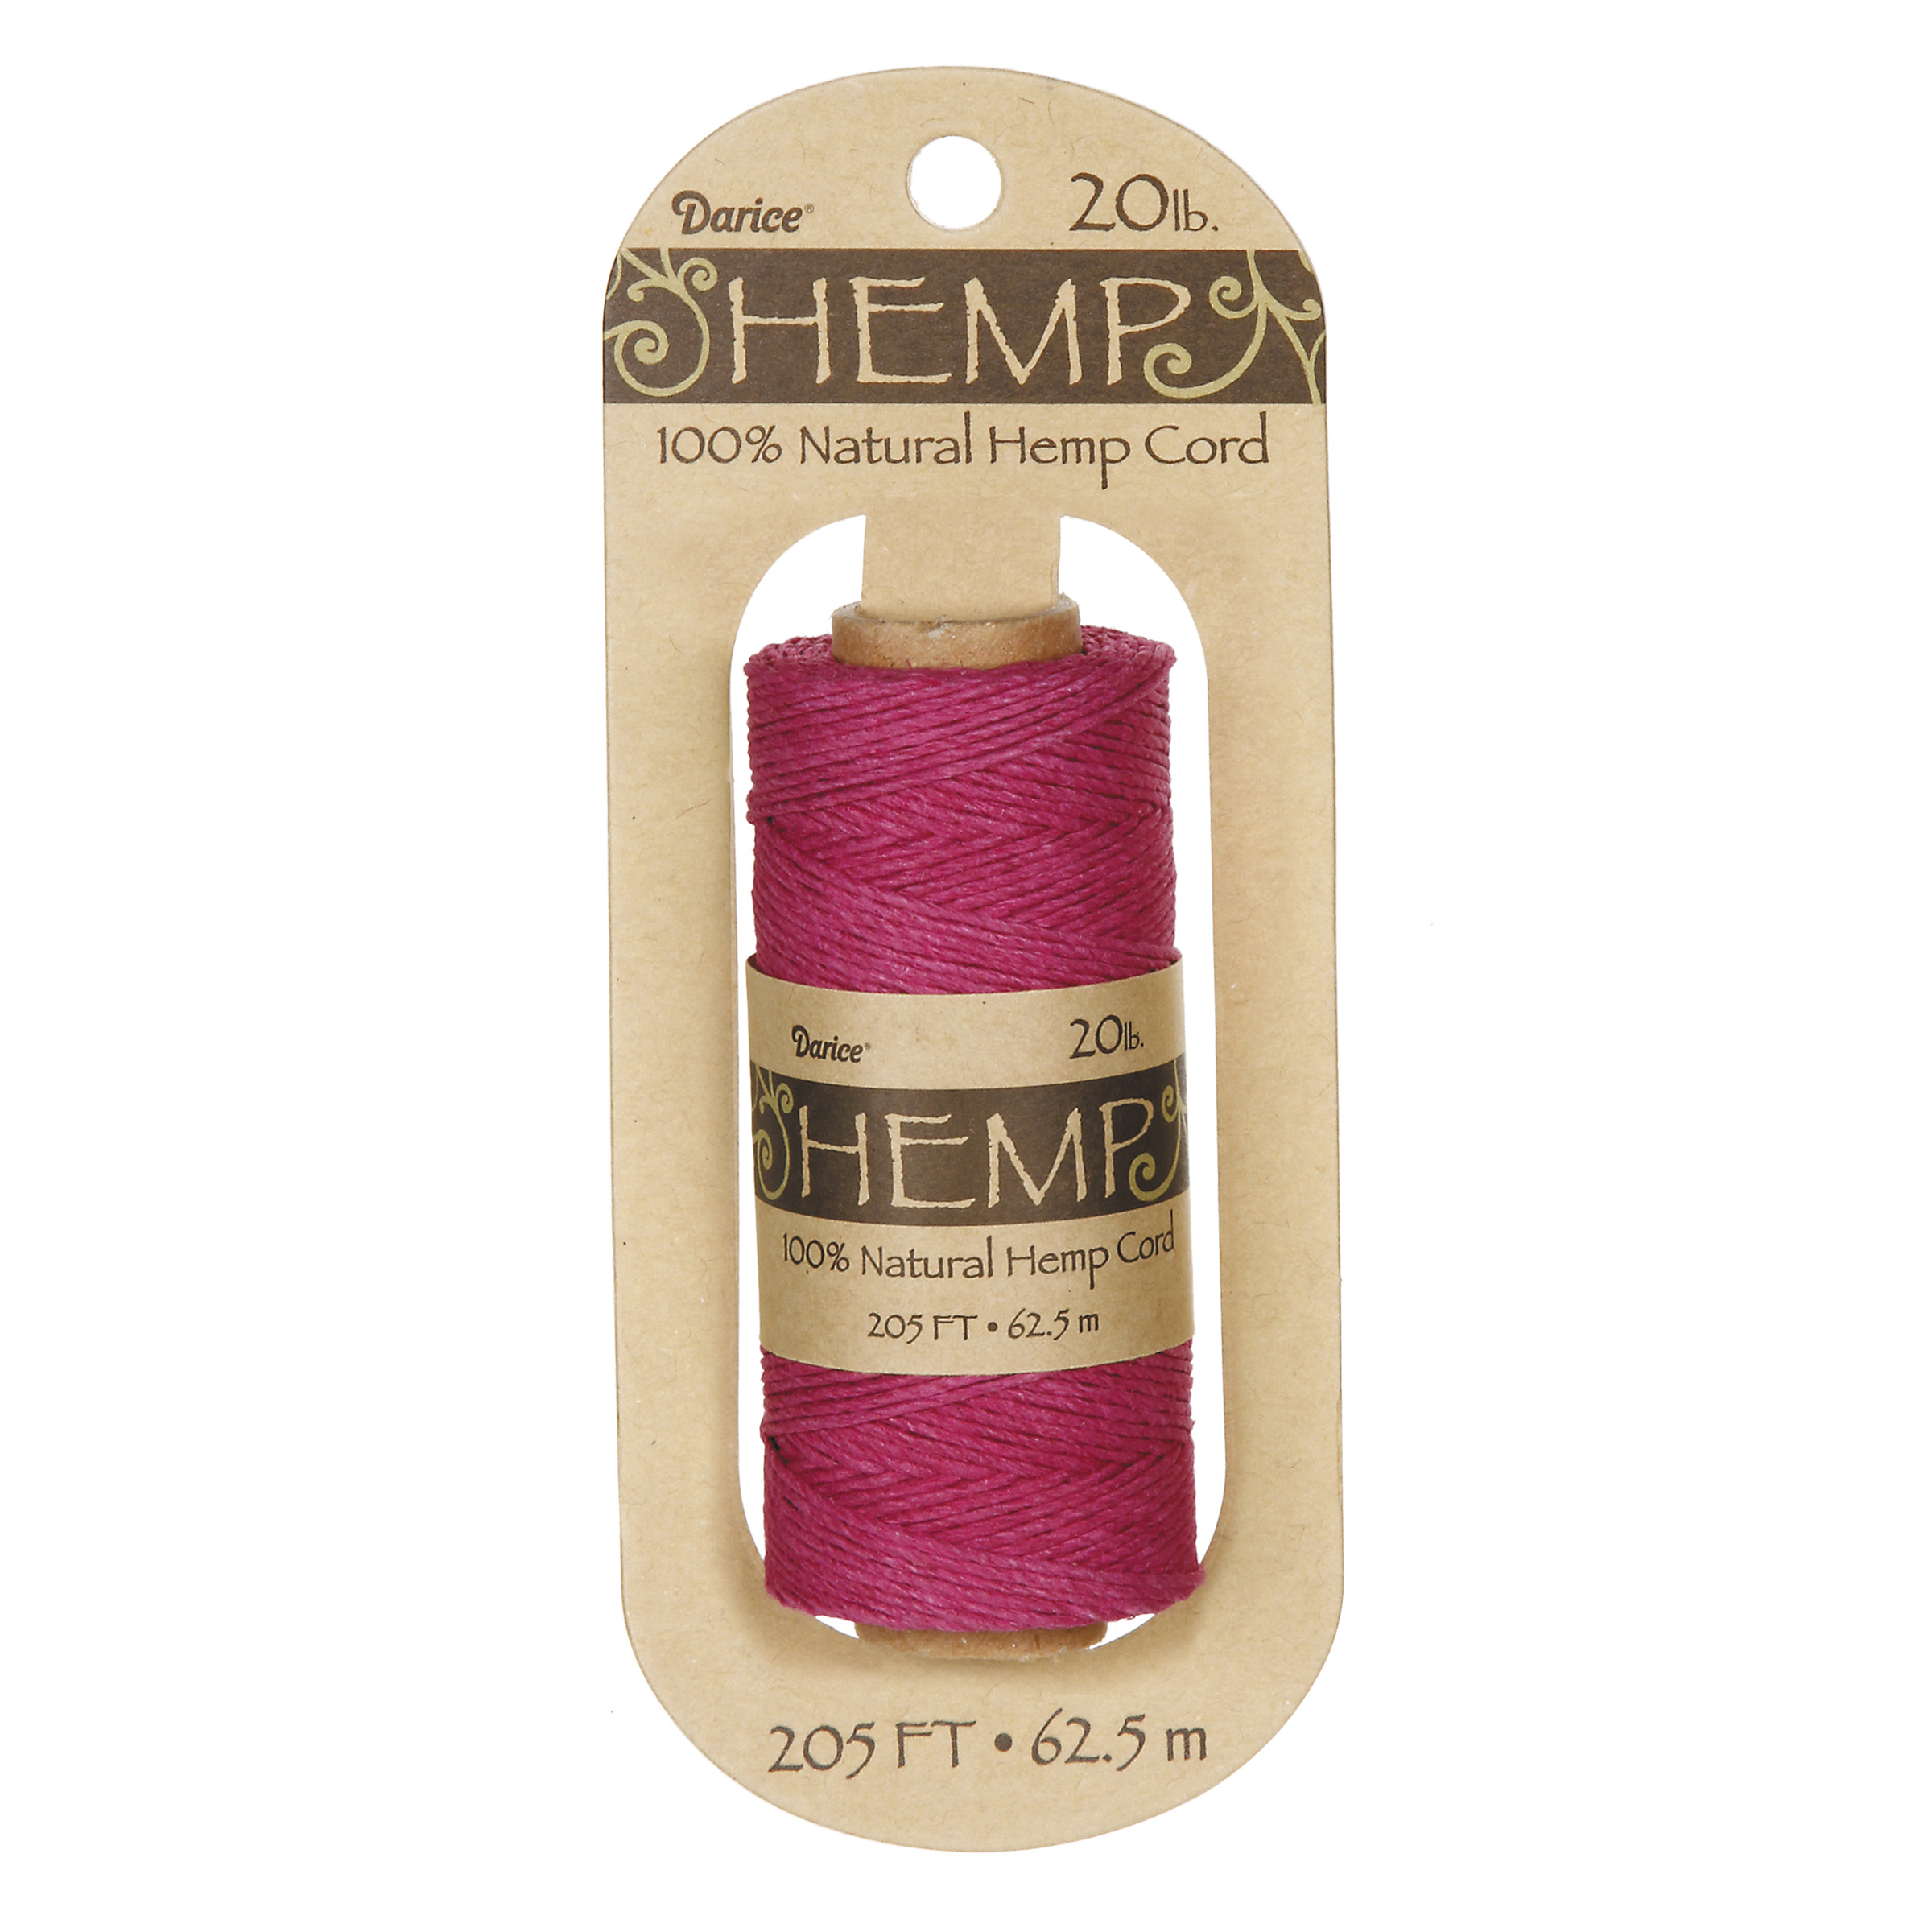 Hemp Spool, Dark Pink, 205ft., 20lb.